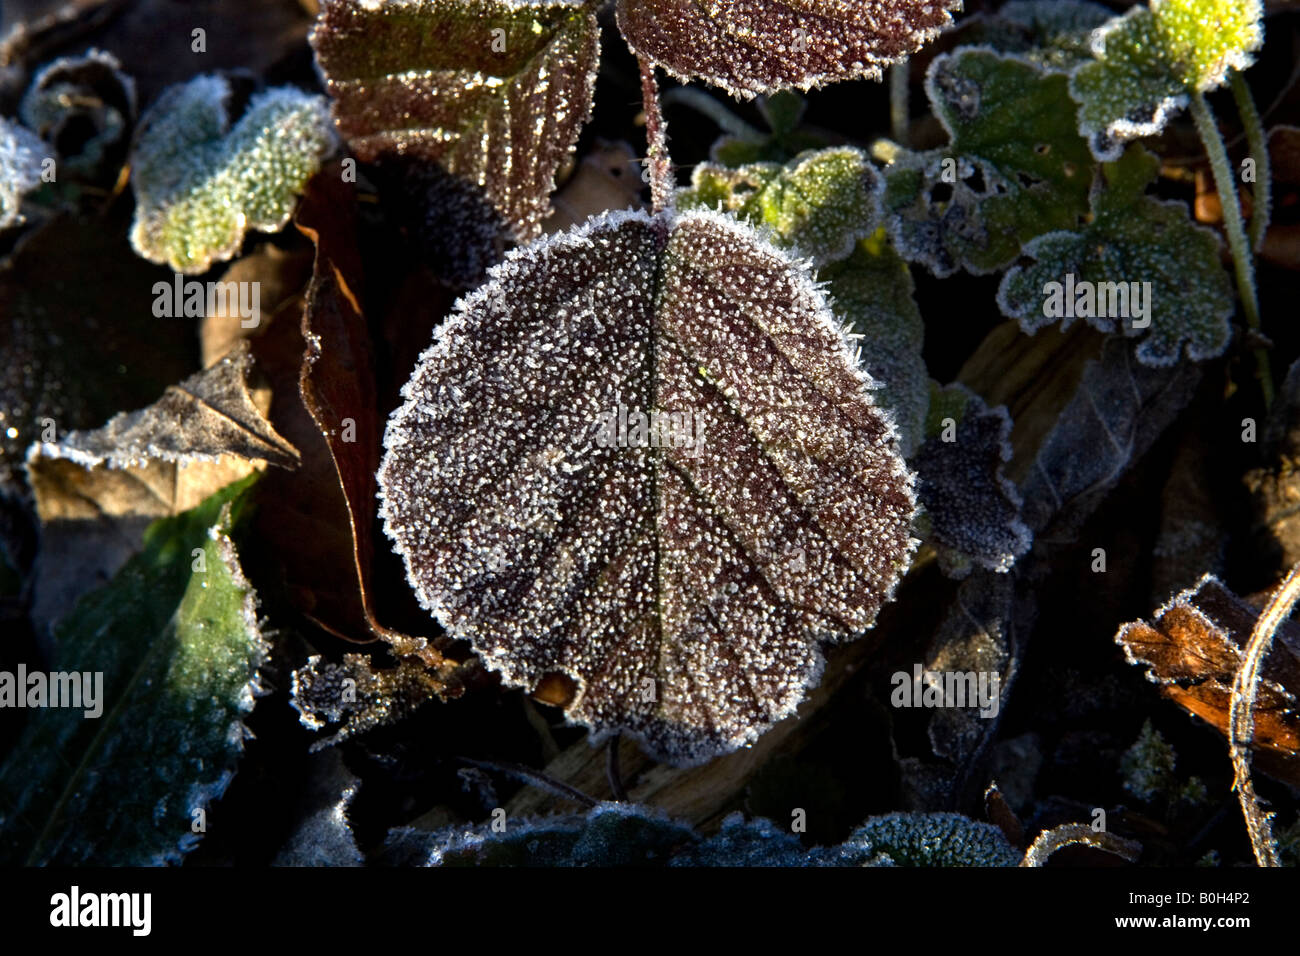 Hoar frost covers a leaf. Stock Photo